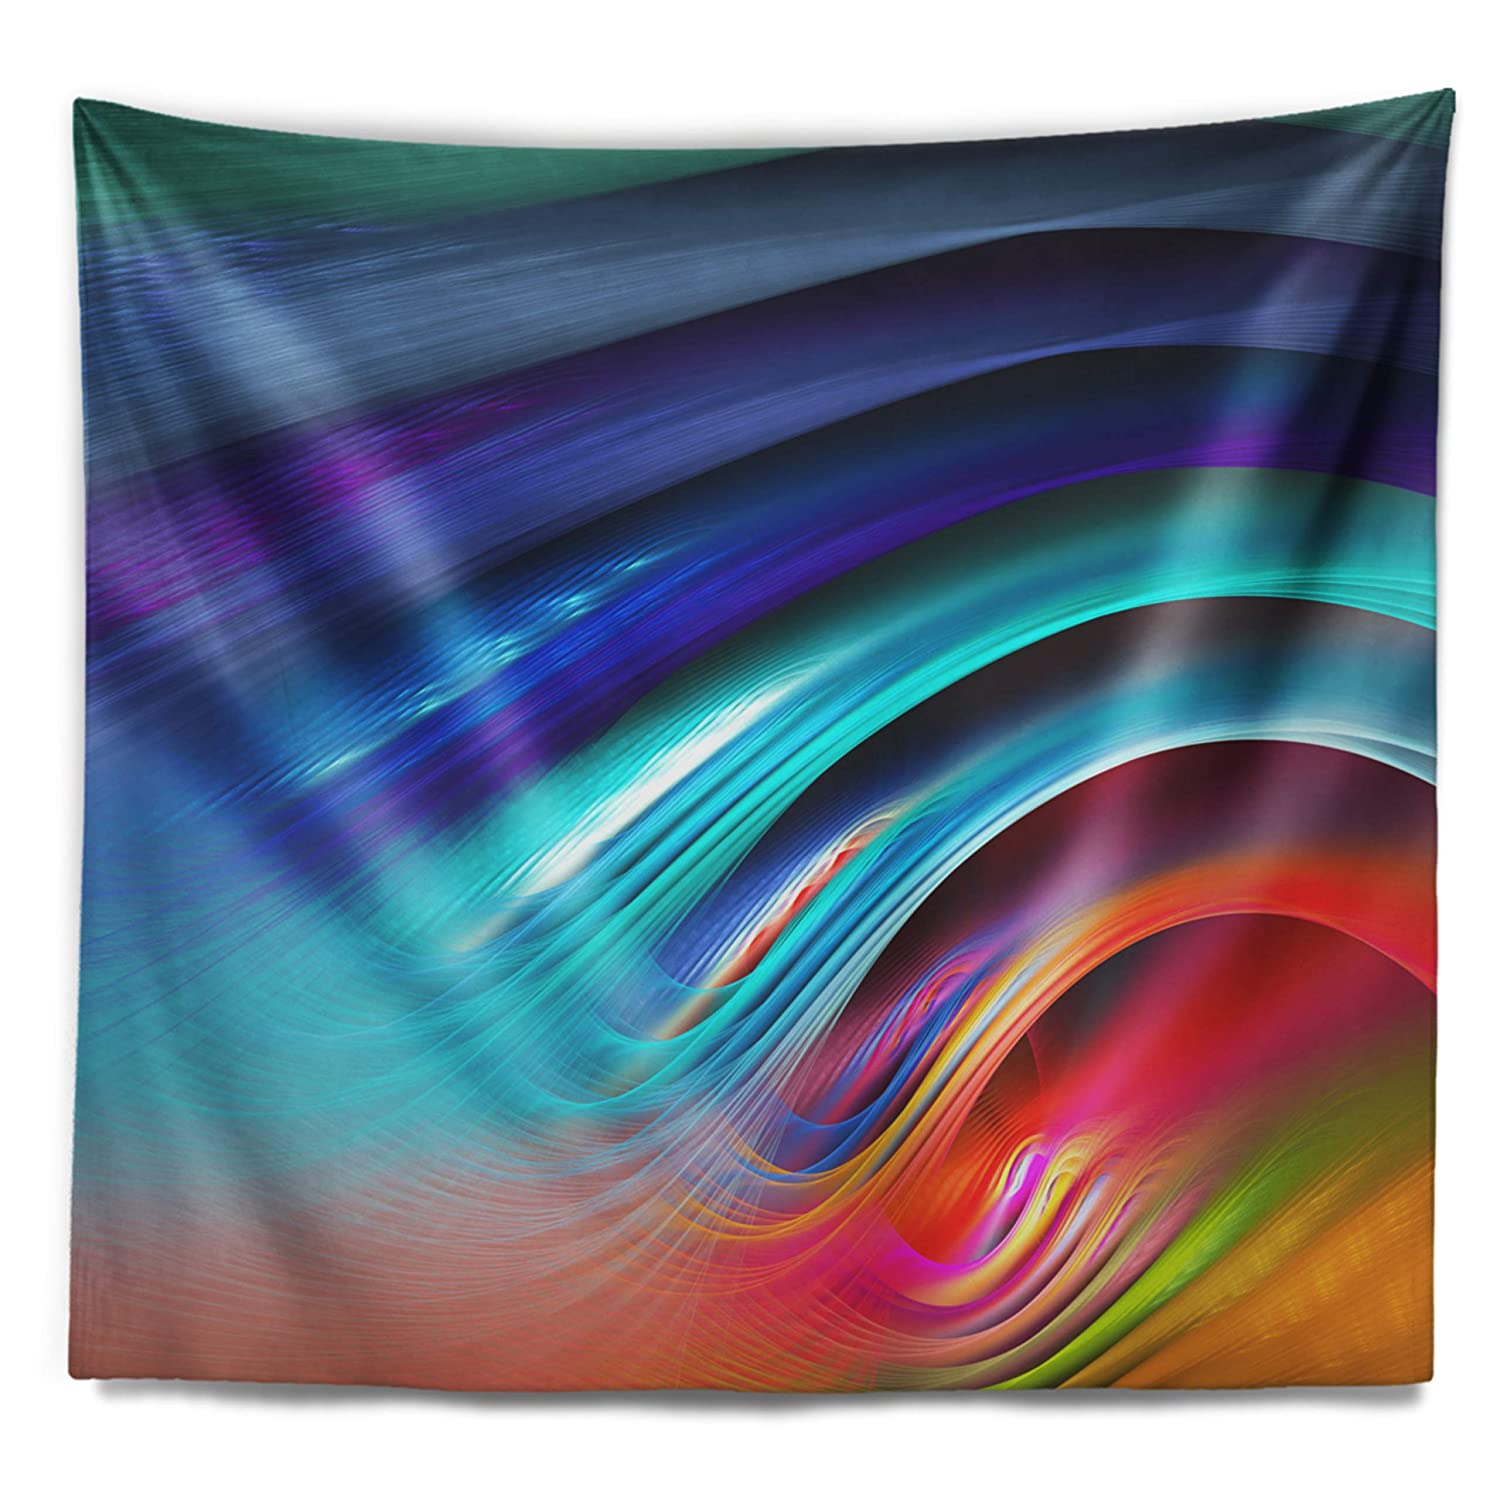 Created On Lightweight Polyester Fabric 80 in x 68 in Designart TAP15569-80-68  Beautiful Fractal Rainbow Waves Floral Blanket D/écor Art for Home and Office Wall Tapestry x Large